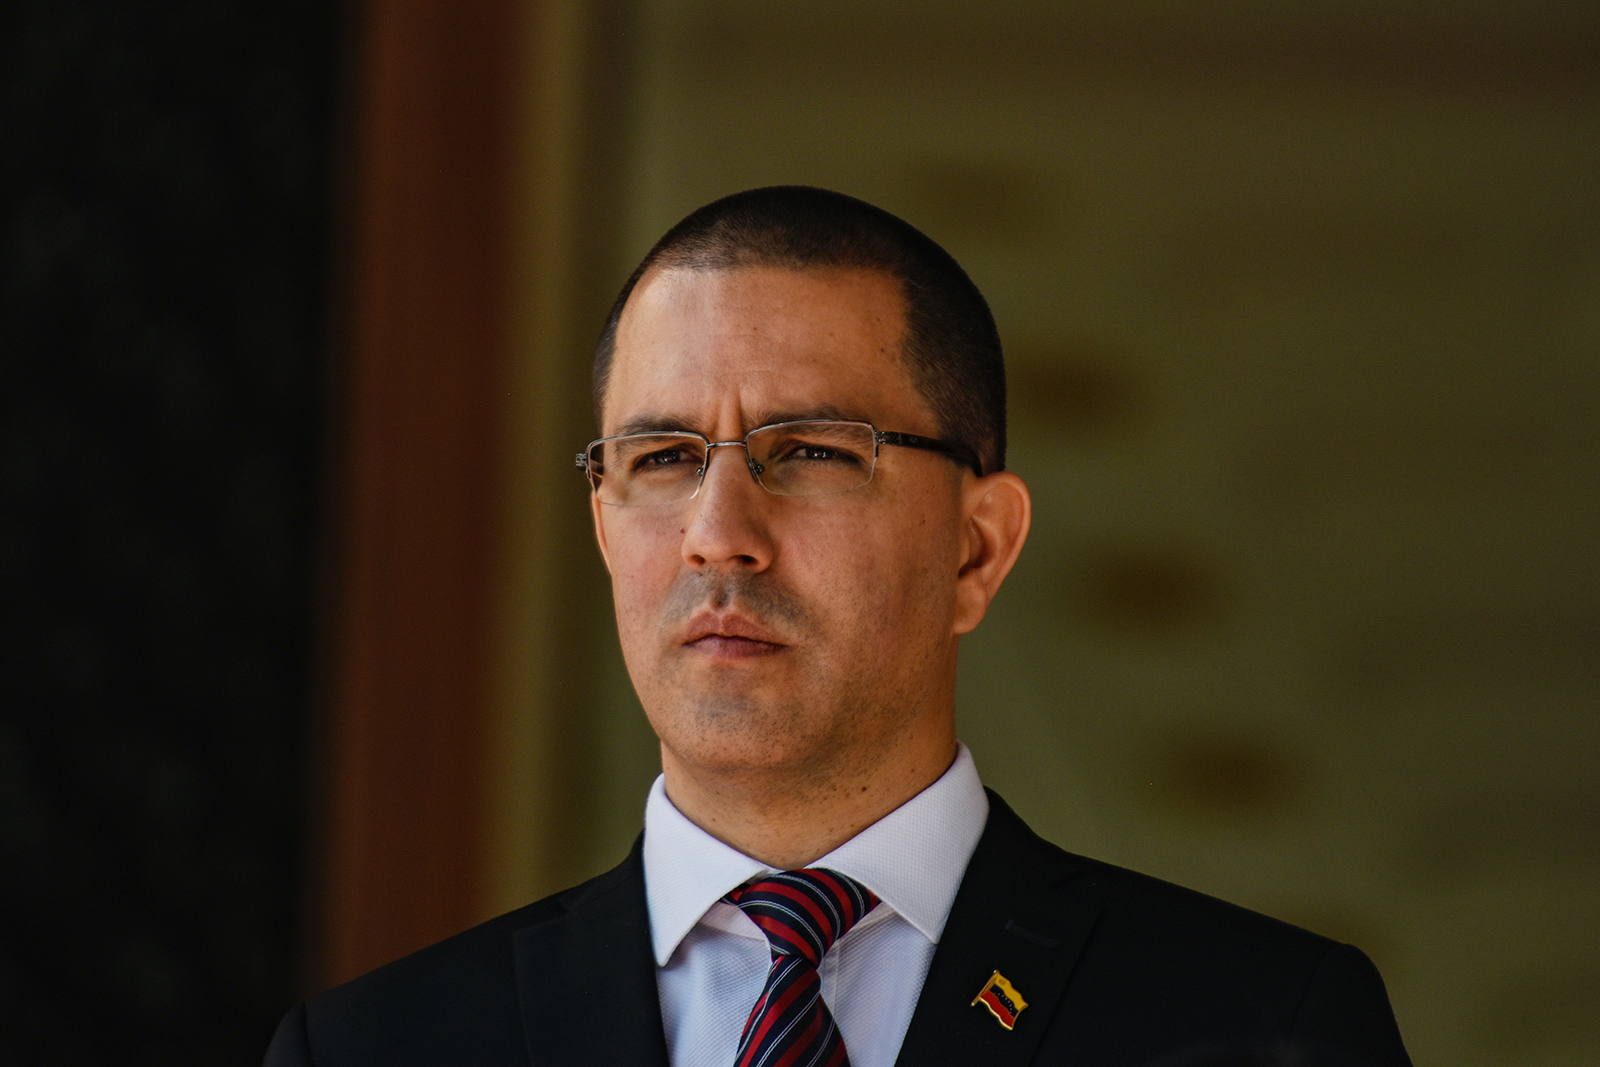 Venezuelan Foreign Minister Jorge Arreaza stands at the Miraflores Government Palace in Caracas, Venezuela, on February 7, 2020.